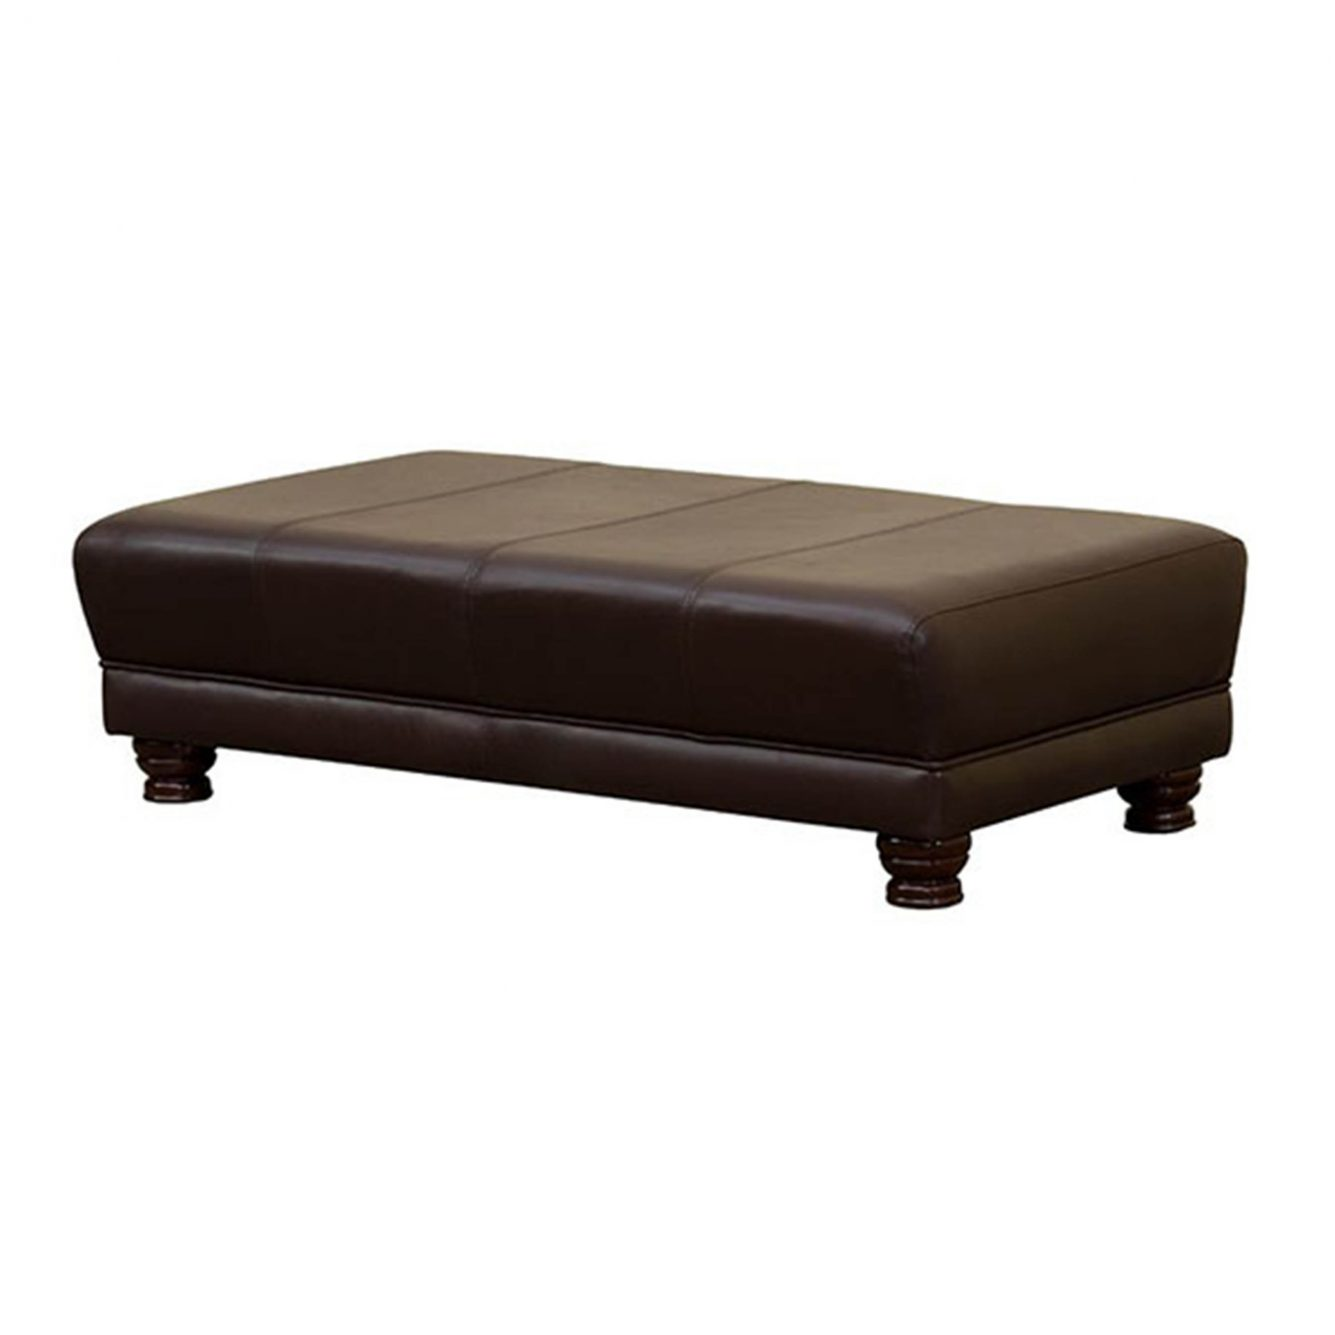 House Haven Ottomans 0007 Hamilton Ottoman